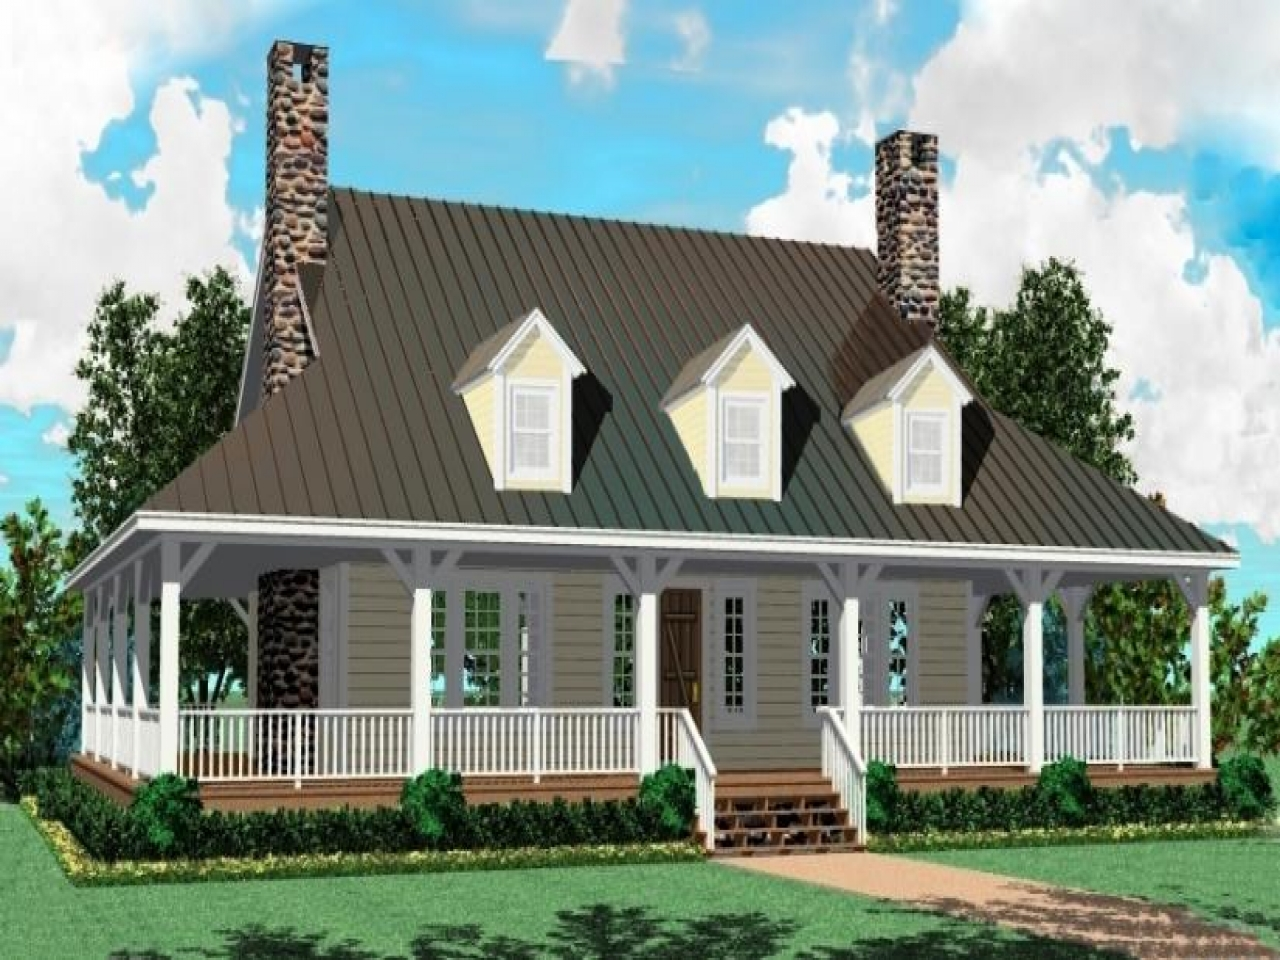 Single Level House Plans With Wrap Around Porches